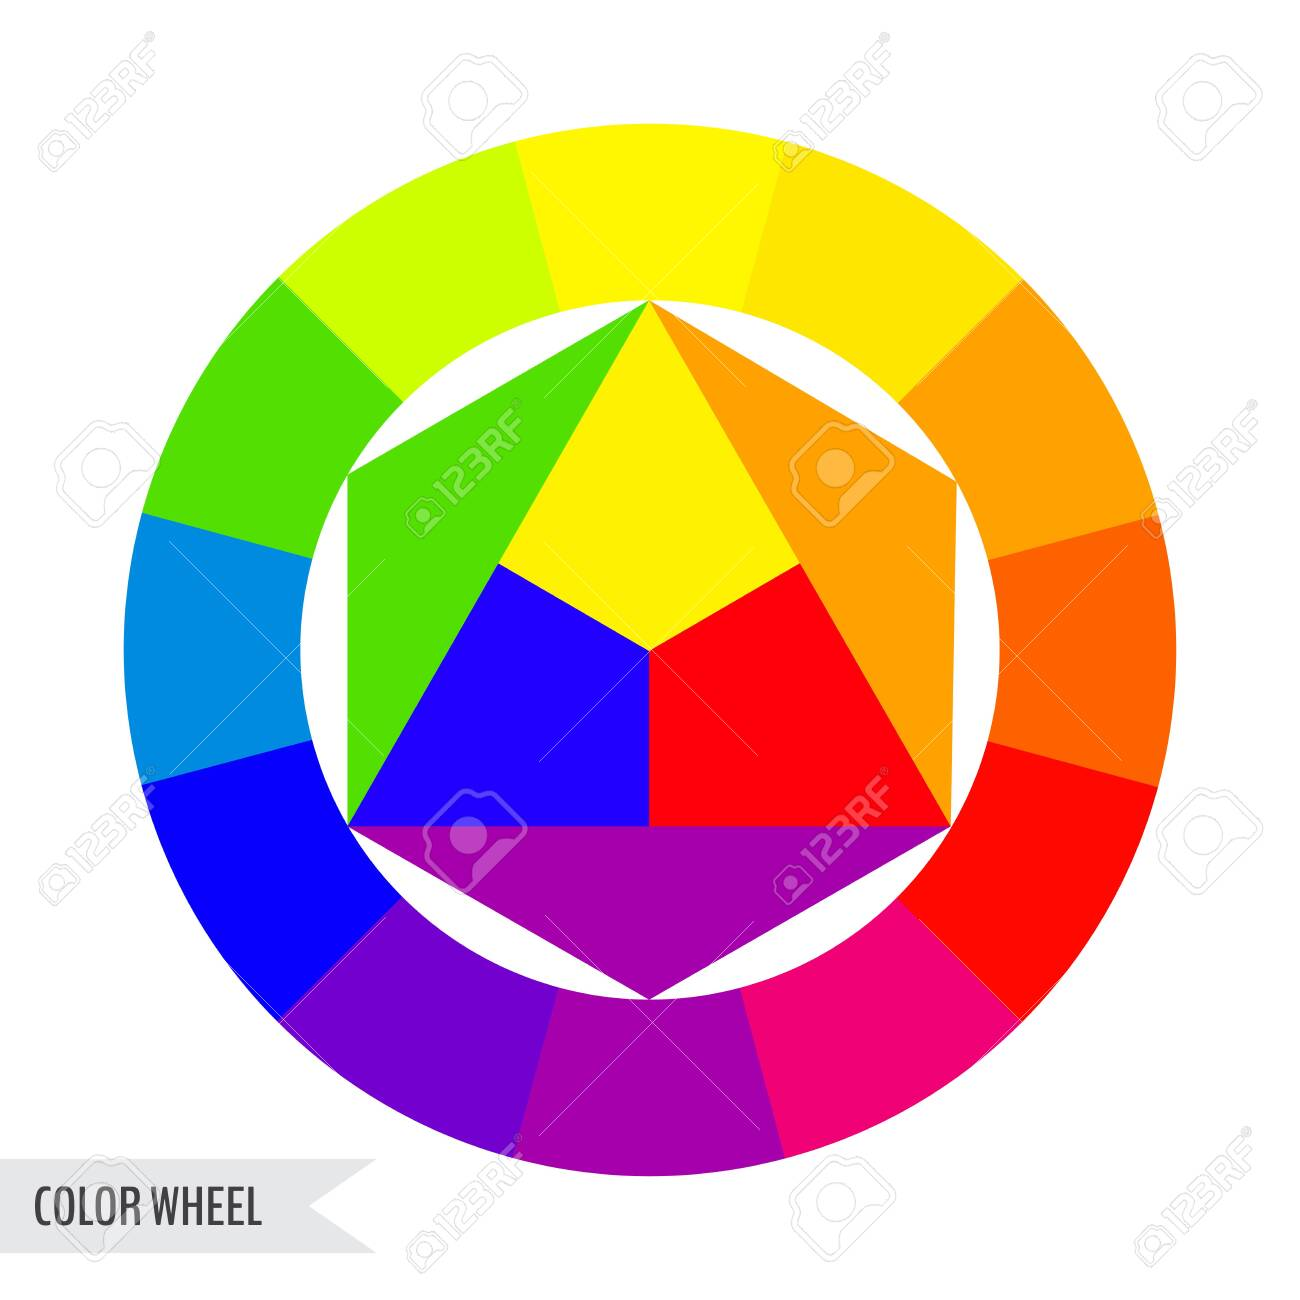 Bright color wheel chart isolated on white background. Vector illustration for your graphic design. - 130022516